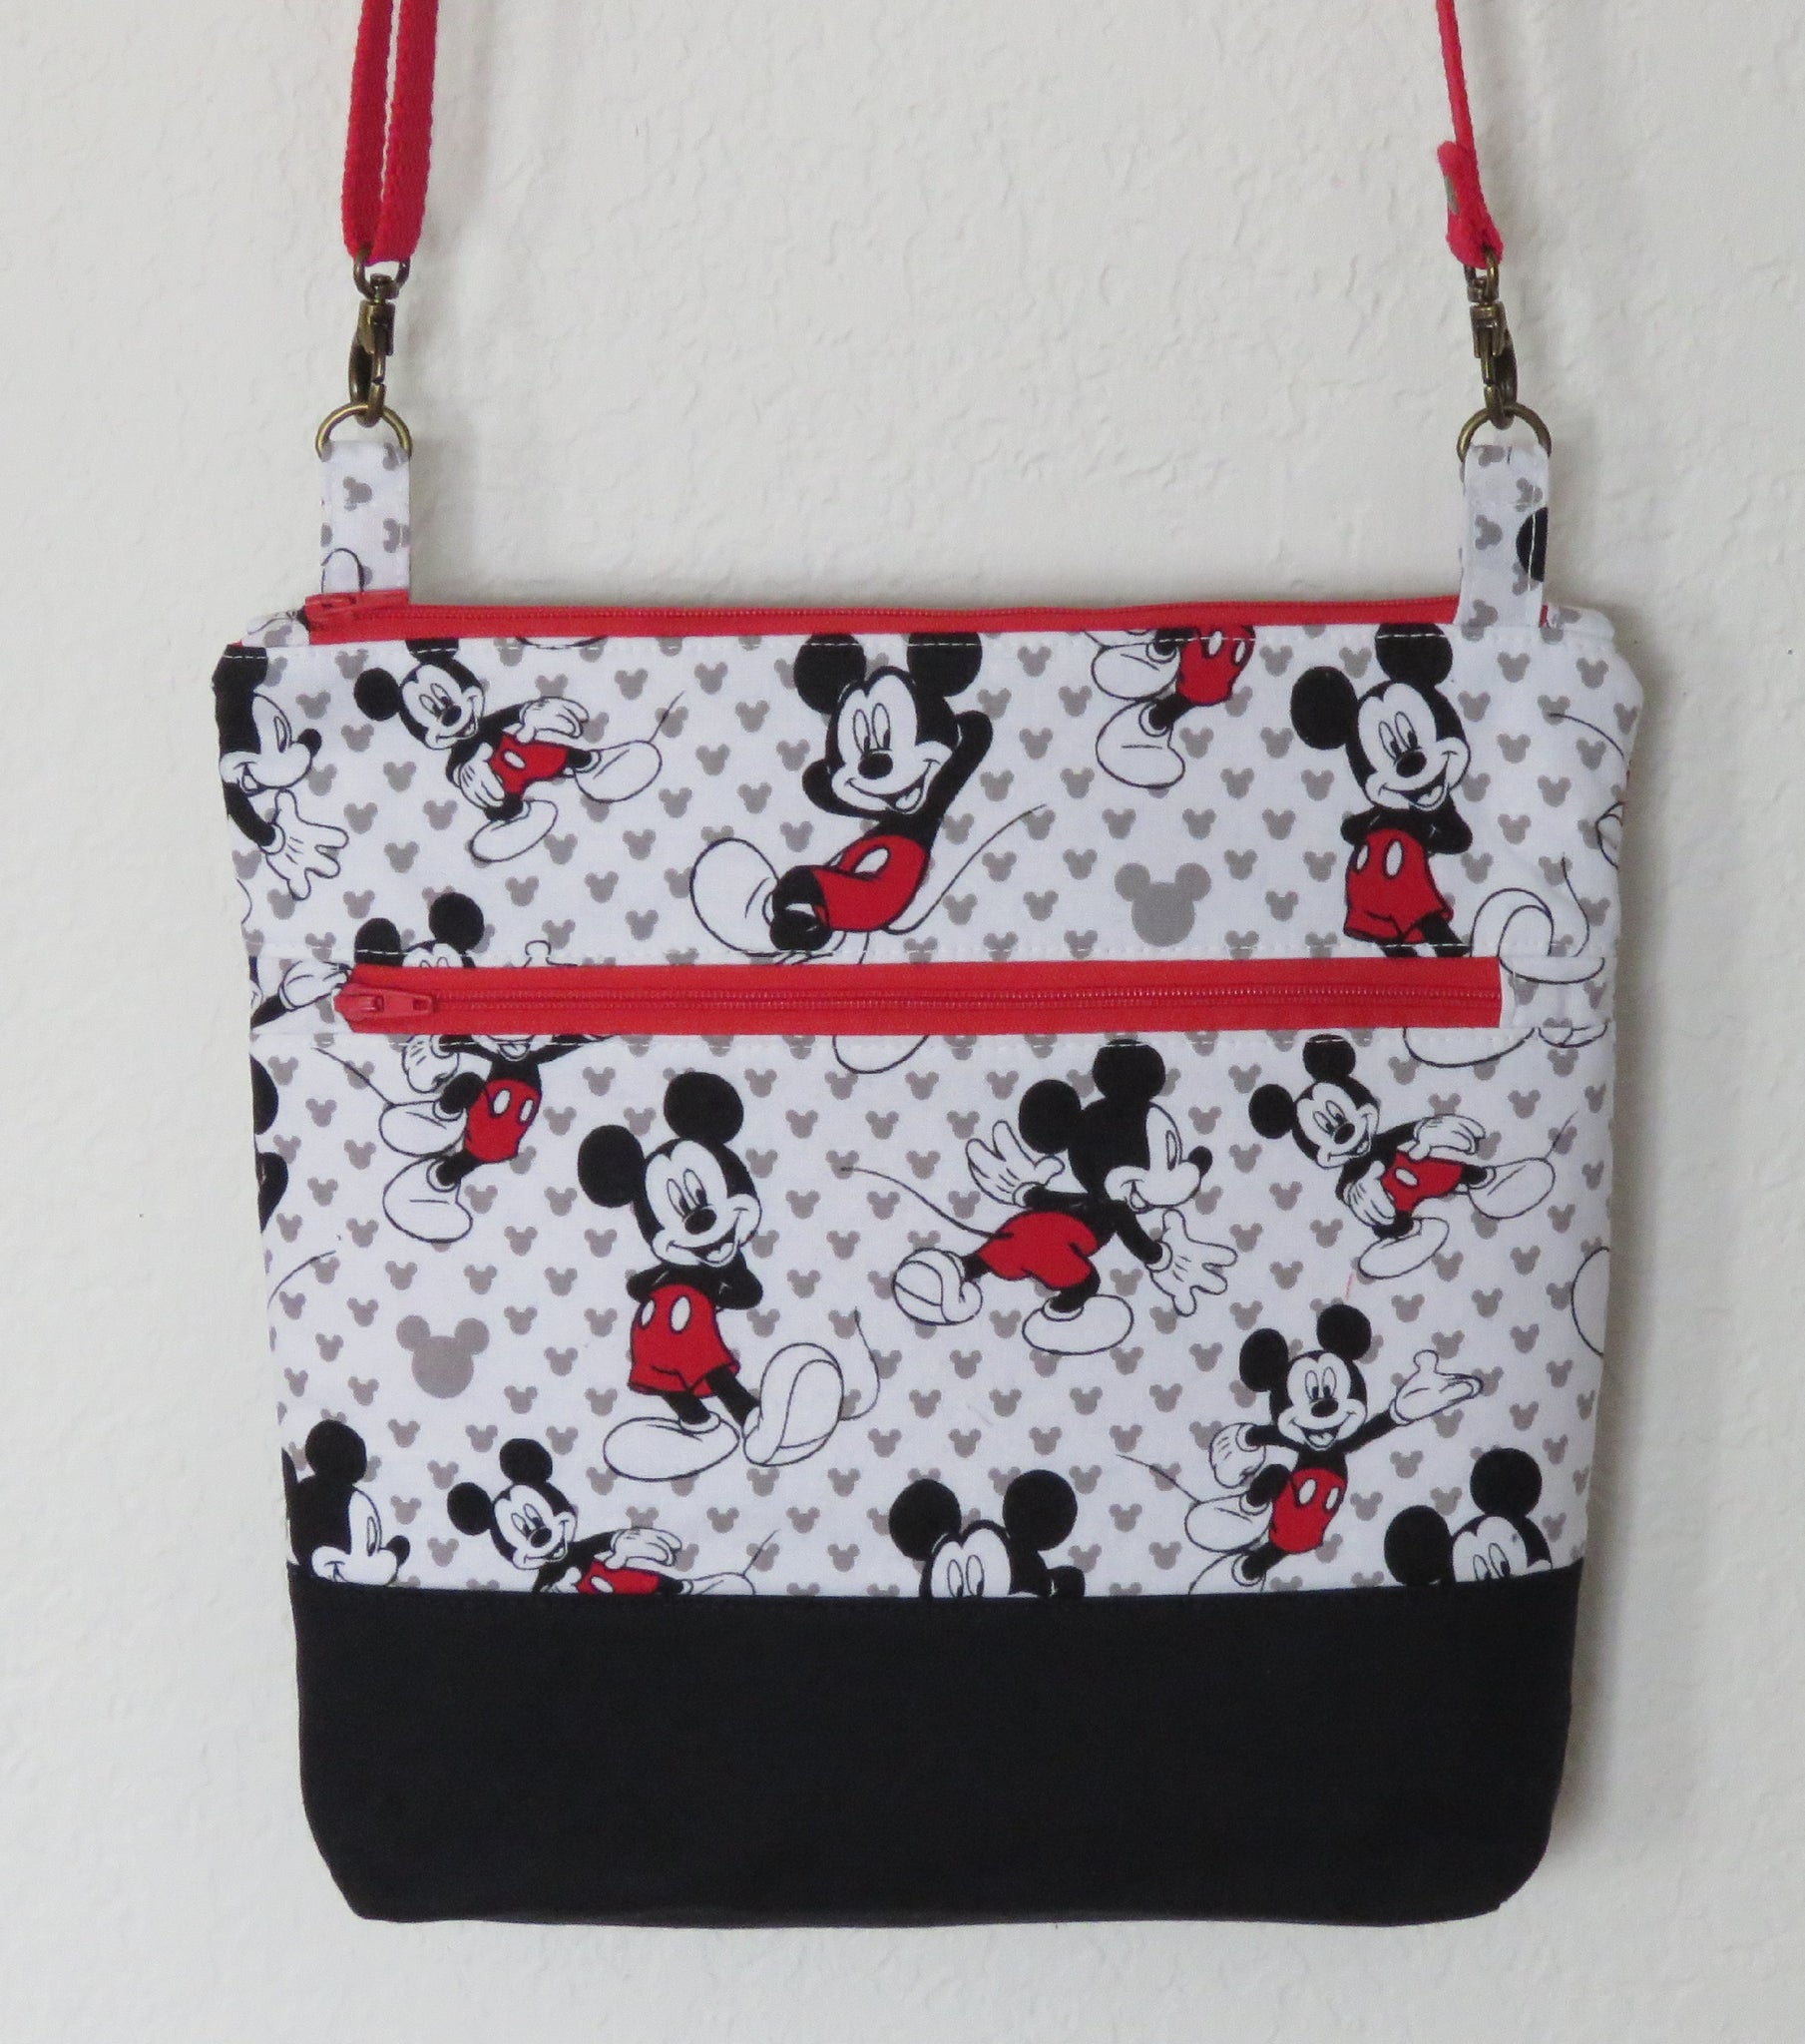 Disney Mickey Totally Toss Crossbody Purse with Adjustable Strap